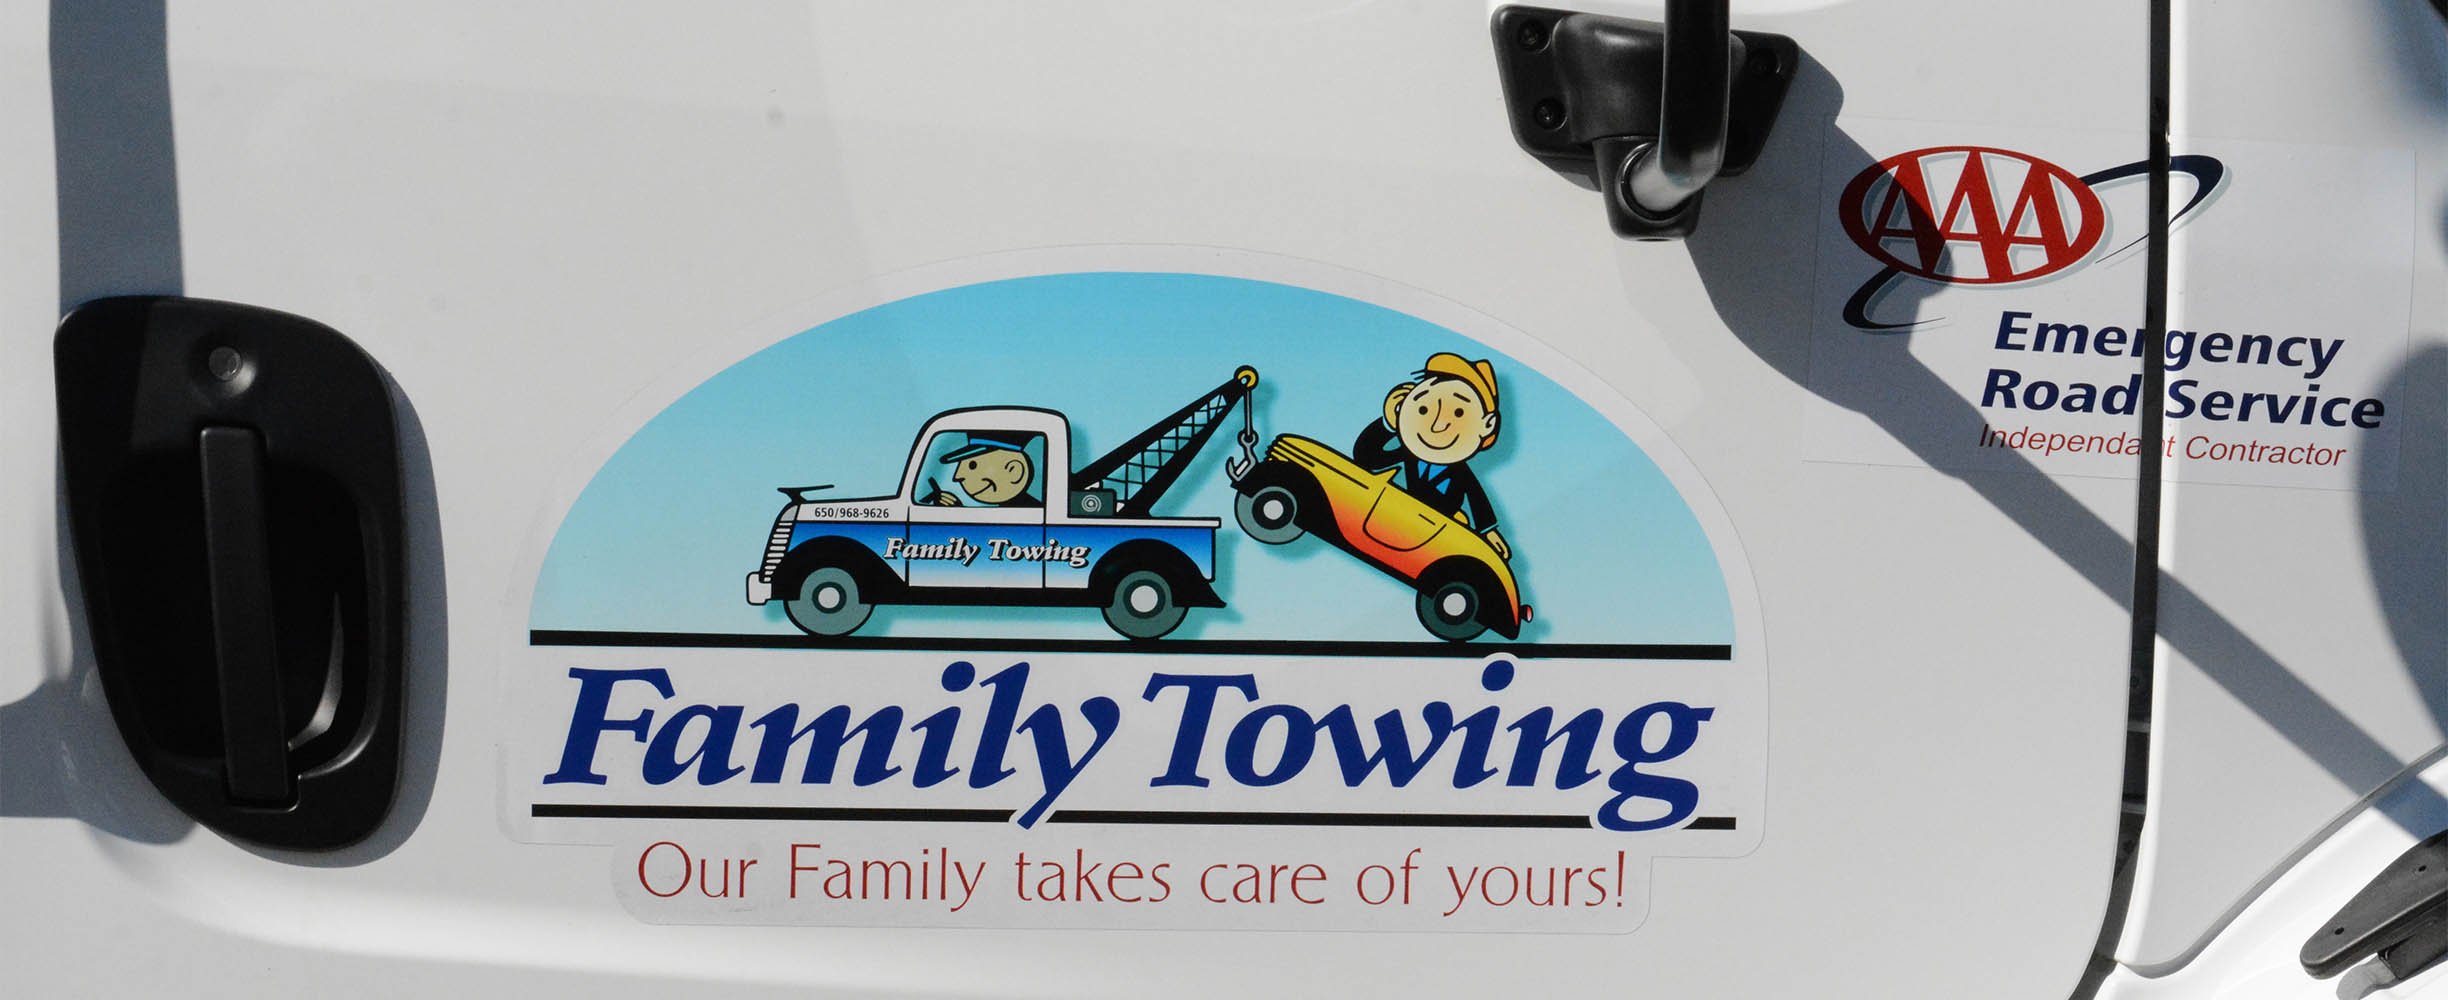 Family Towing is a famiy owned company offering all types of towing and transpotation services in Moumntain Viewe and the San Francisco Peninsula